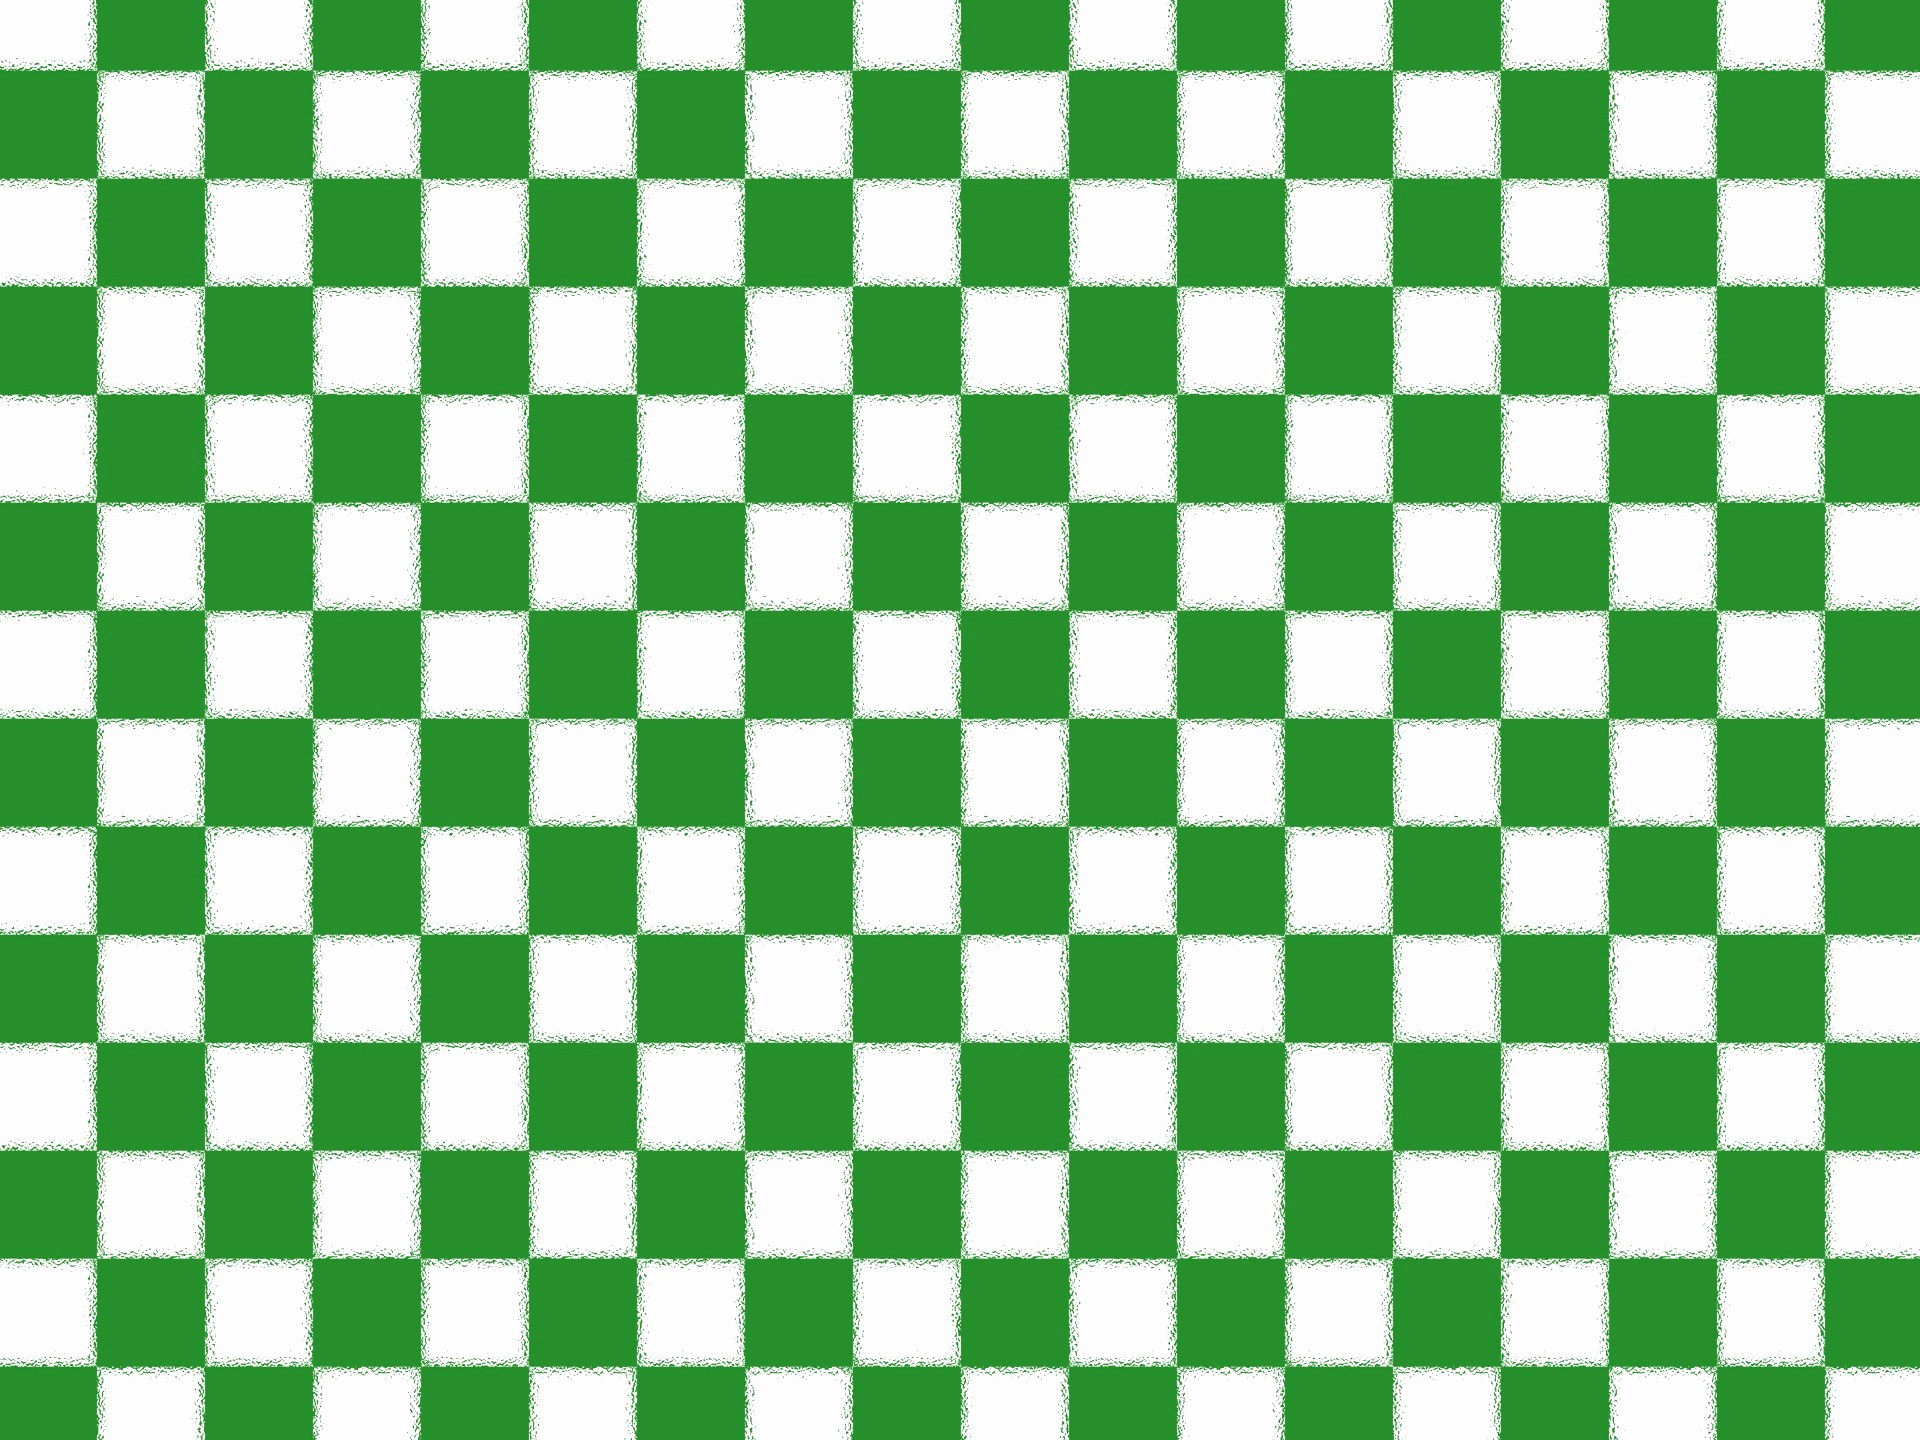 Pictures Of A Checker Board Inspirational Green Checkered Background Free Stock Public